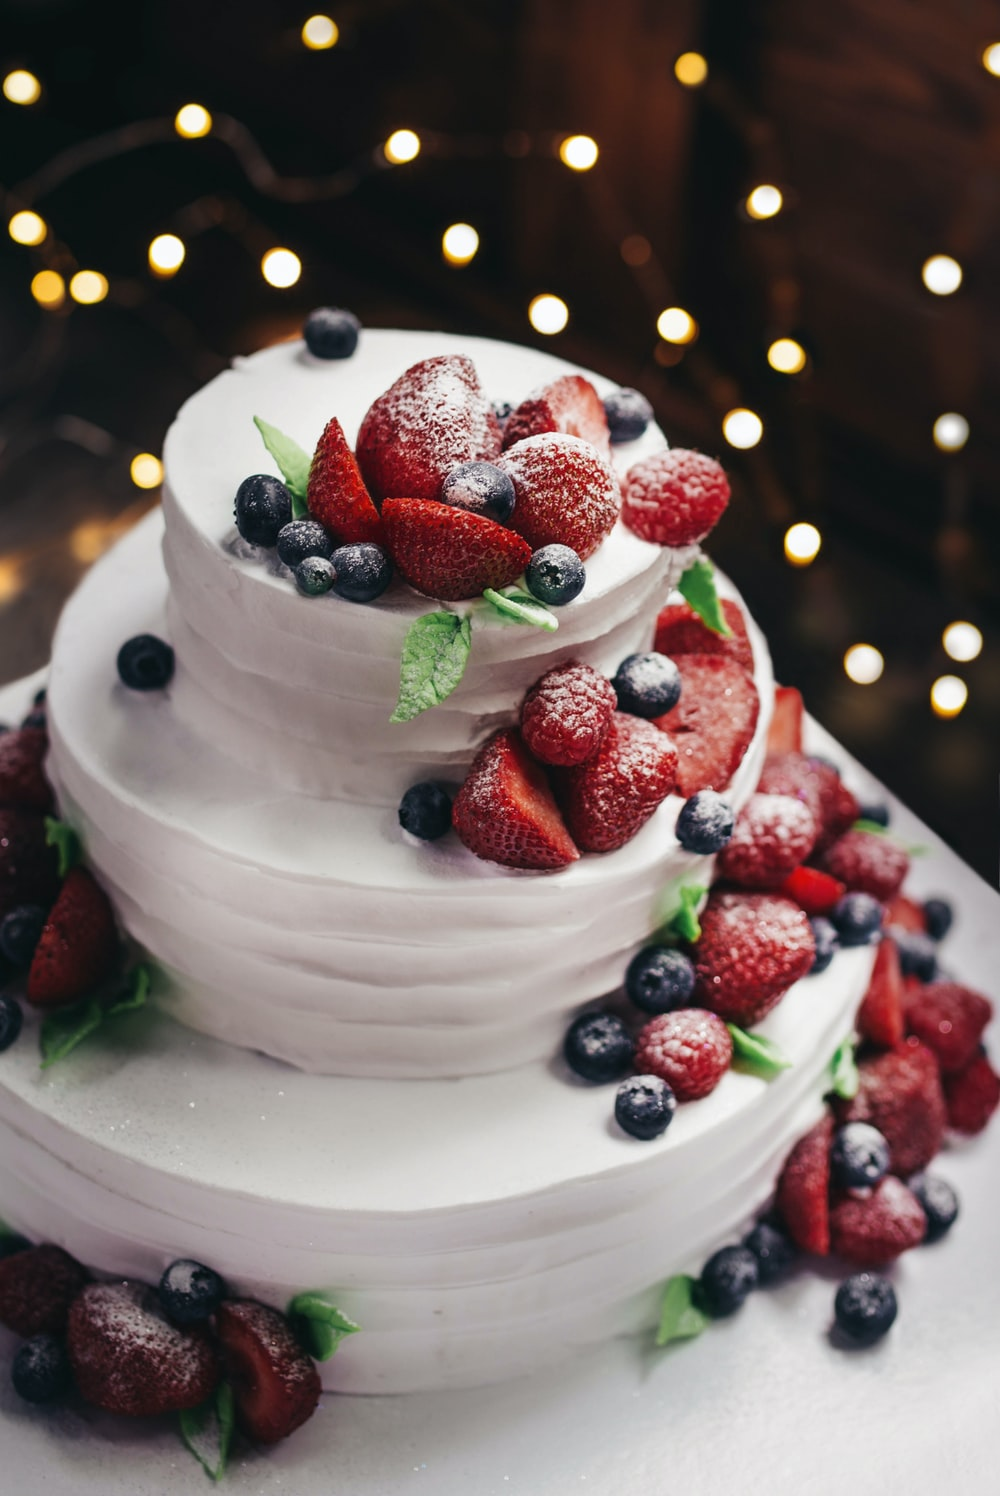 100 Birthday Cake Pictures Download Free Images On Unsplash